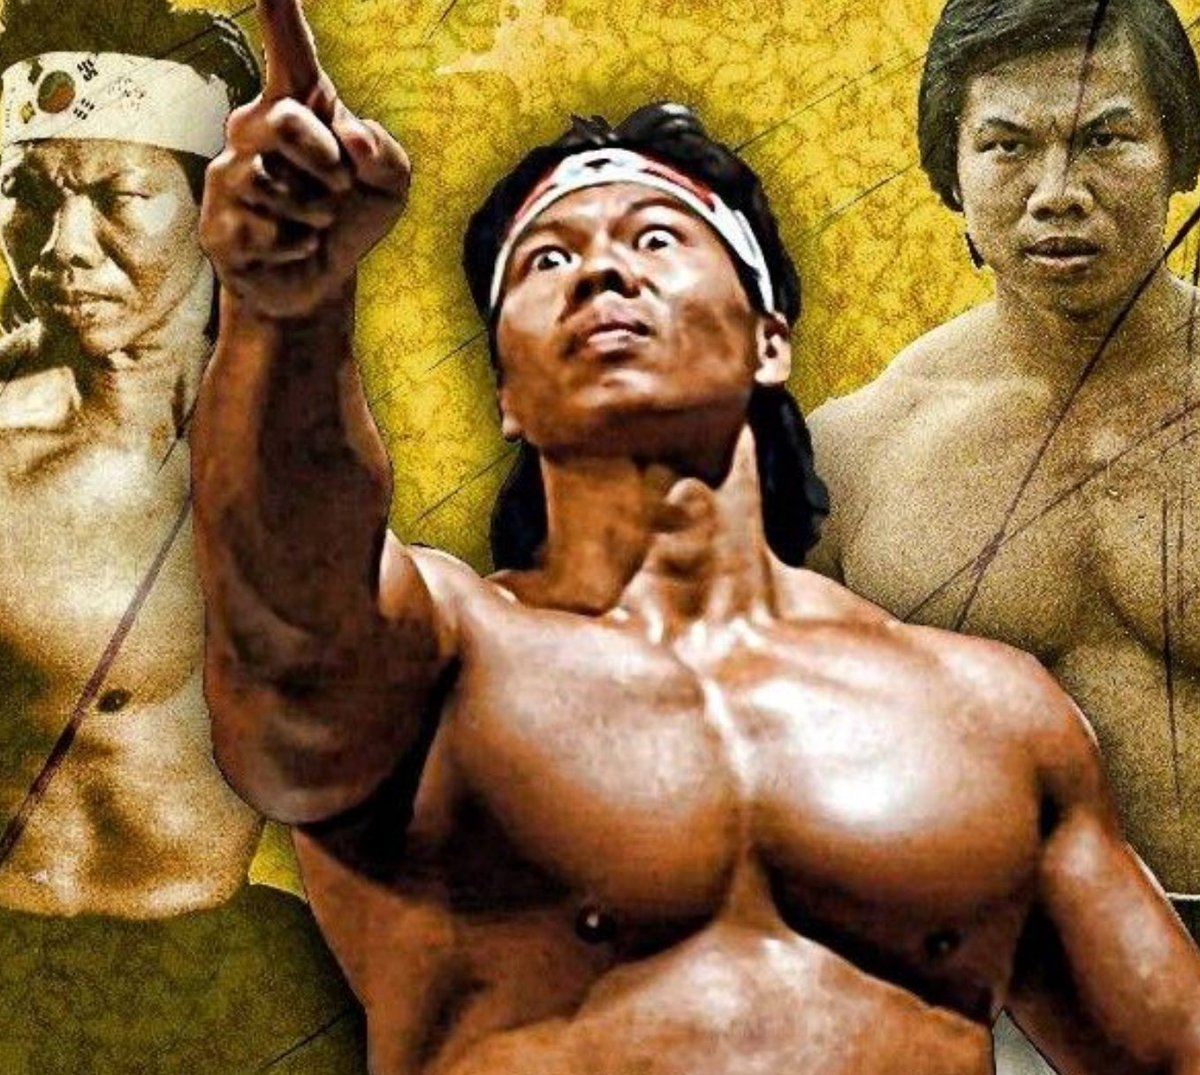 Bolo Yeung you are next